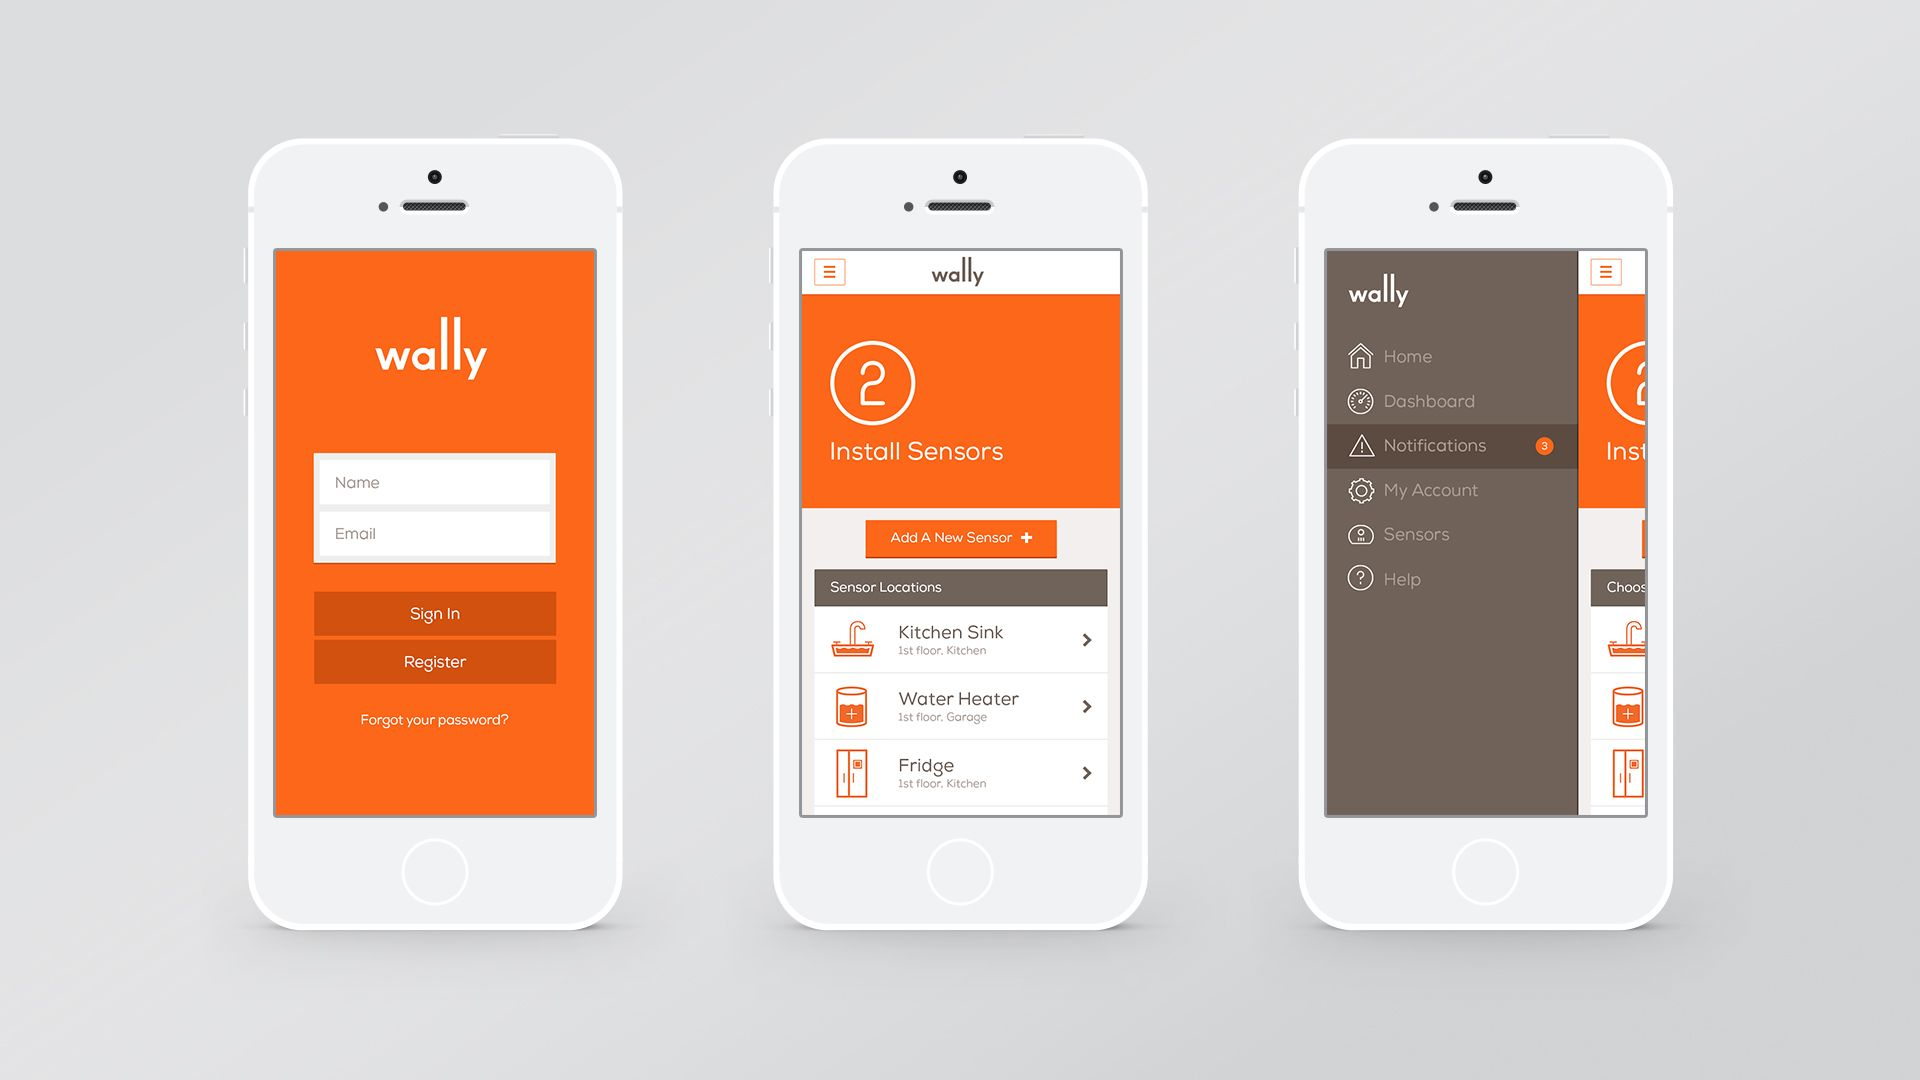 wally app design by character